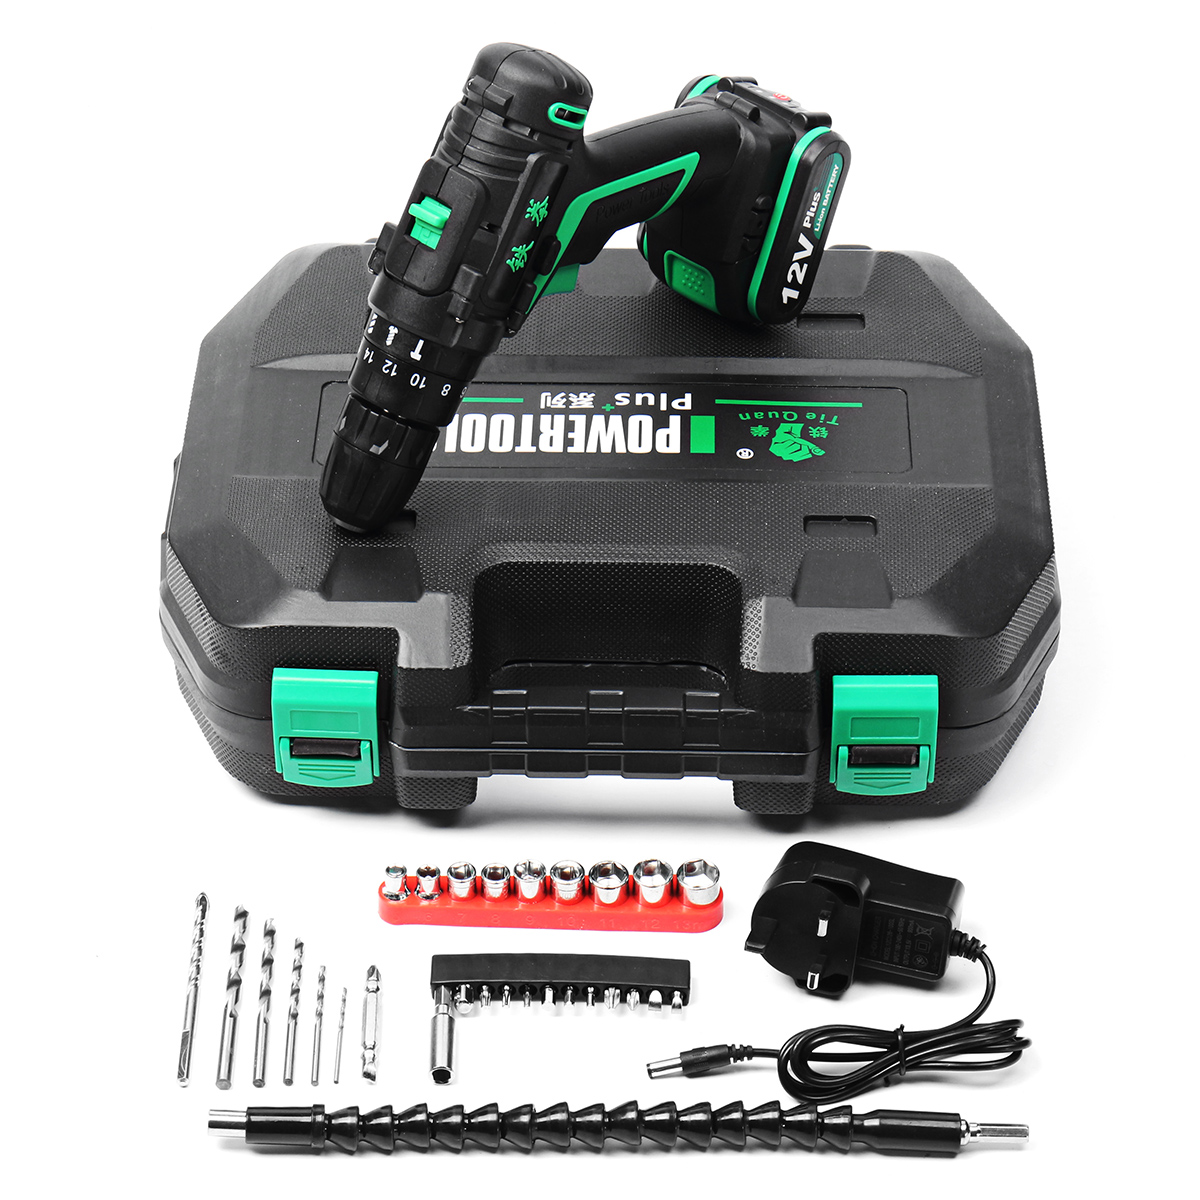 12V 1.5Ah Li-ion Battery Cordless Electric Hammer Power Drills Two Speed Power Screwdriver